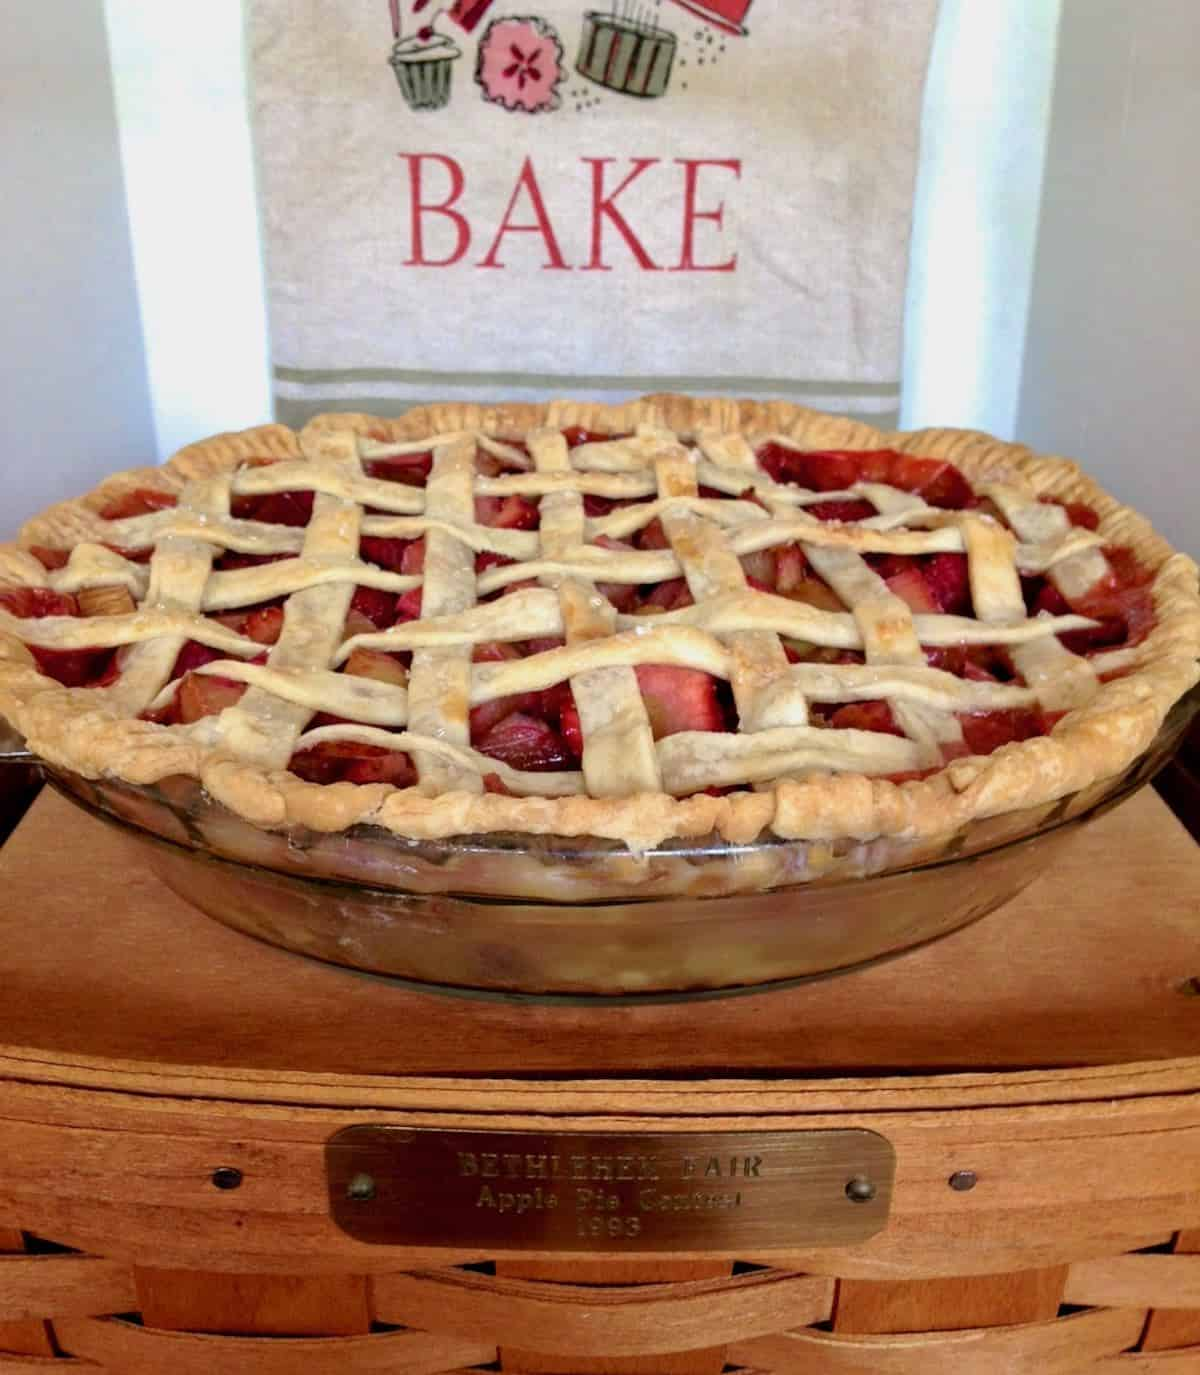 strawberry rhubarb pie sitting on a basket with a tea towel that says BAKE